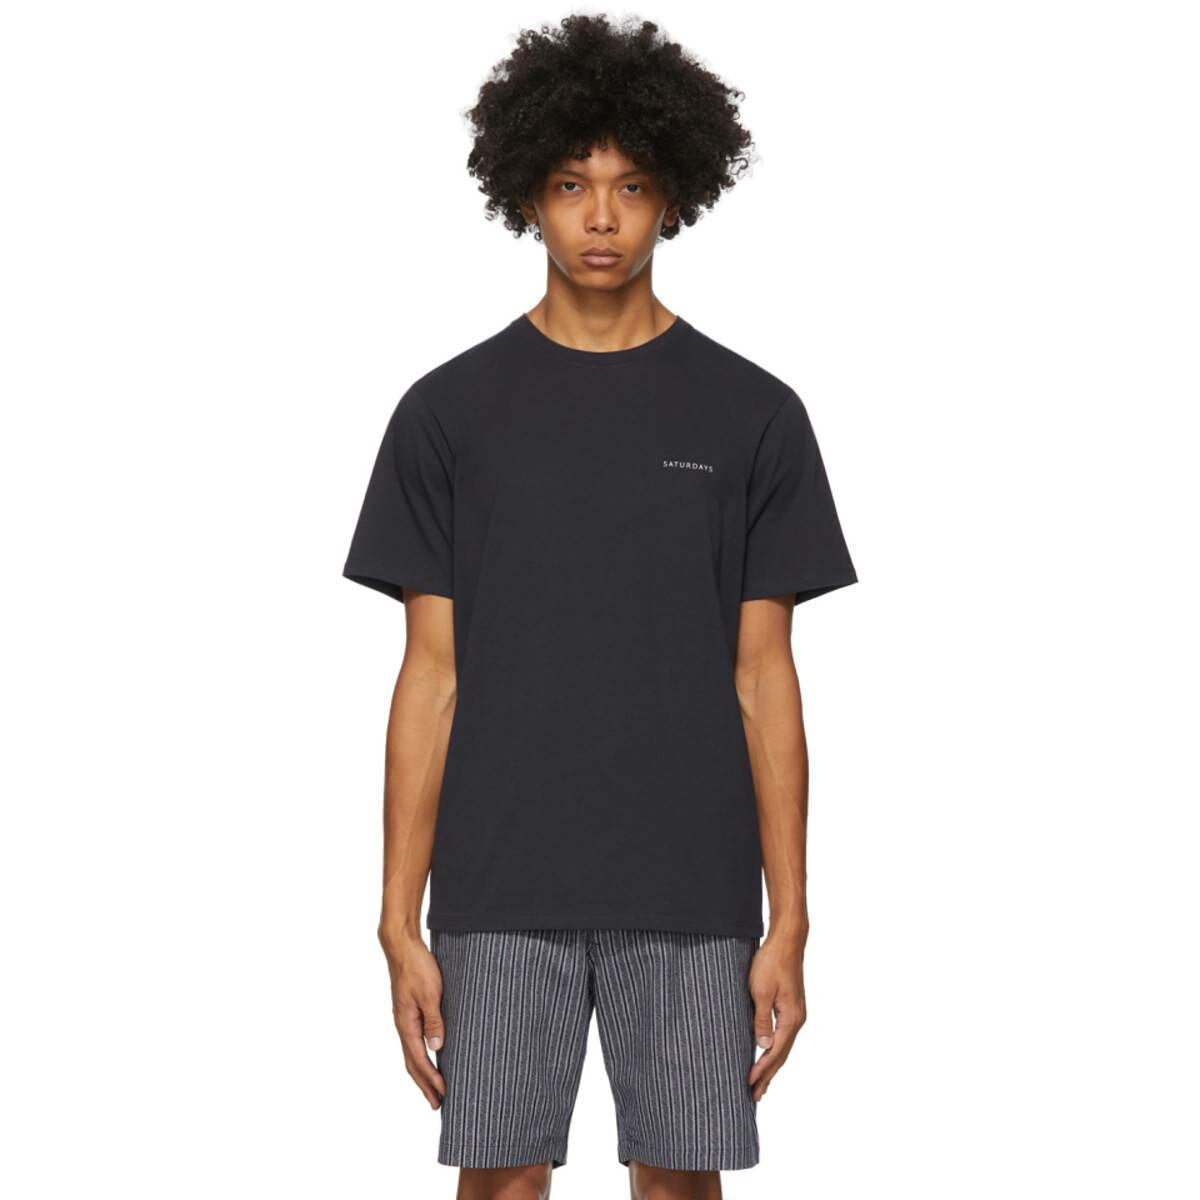 Saturdays NYC Navy Leon T-Shirt Ssense USA MEN Men FASHION Mens T-SHIRTS